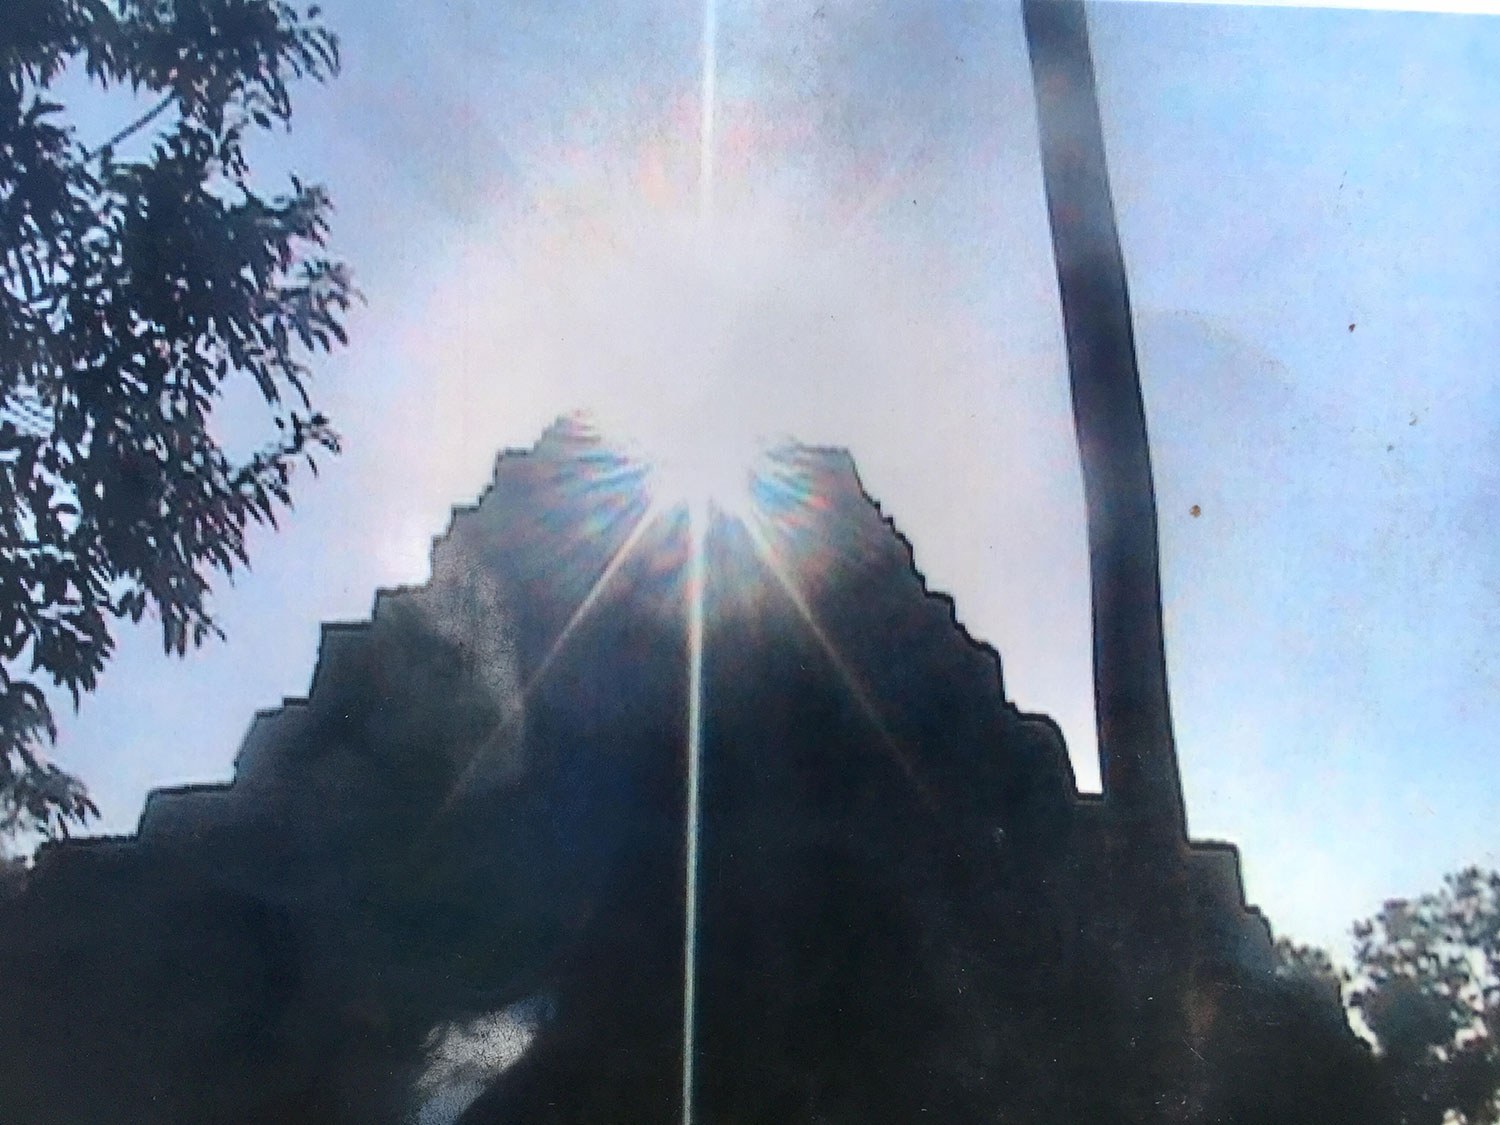 Summer solstice over Temple 1.